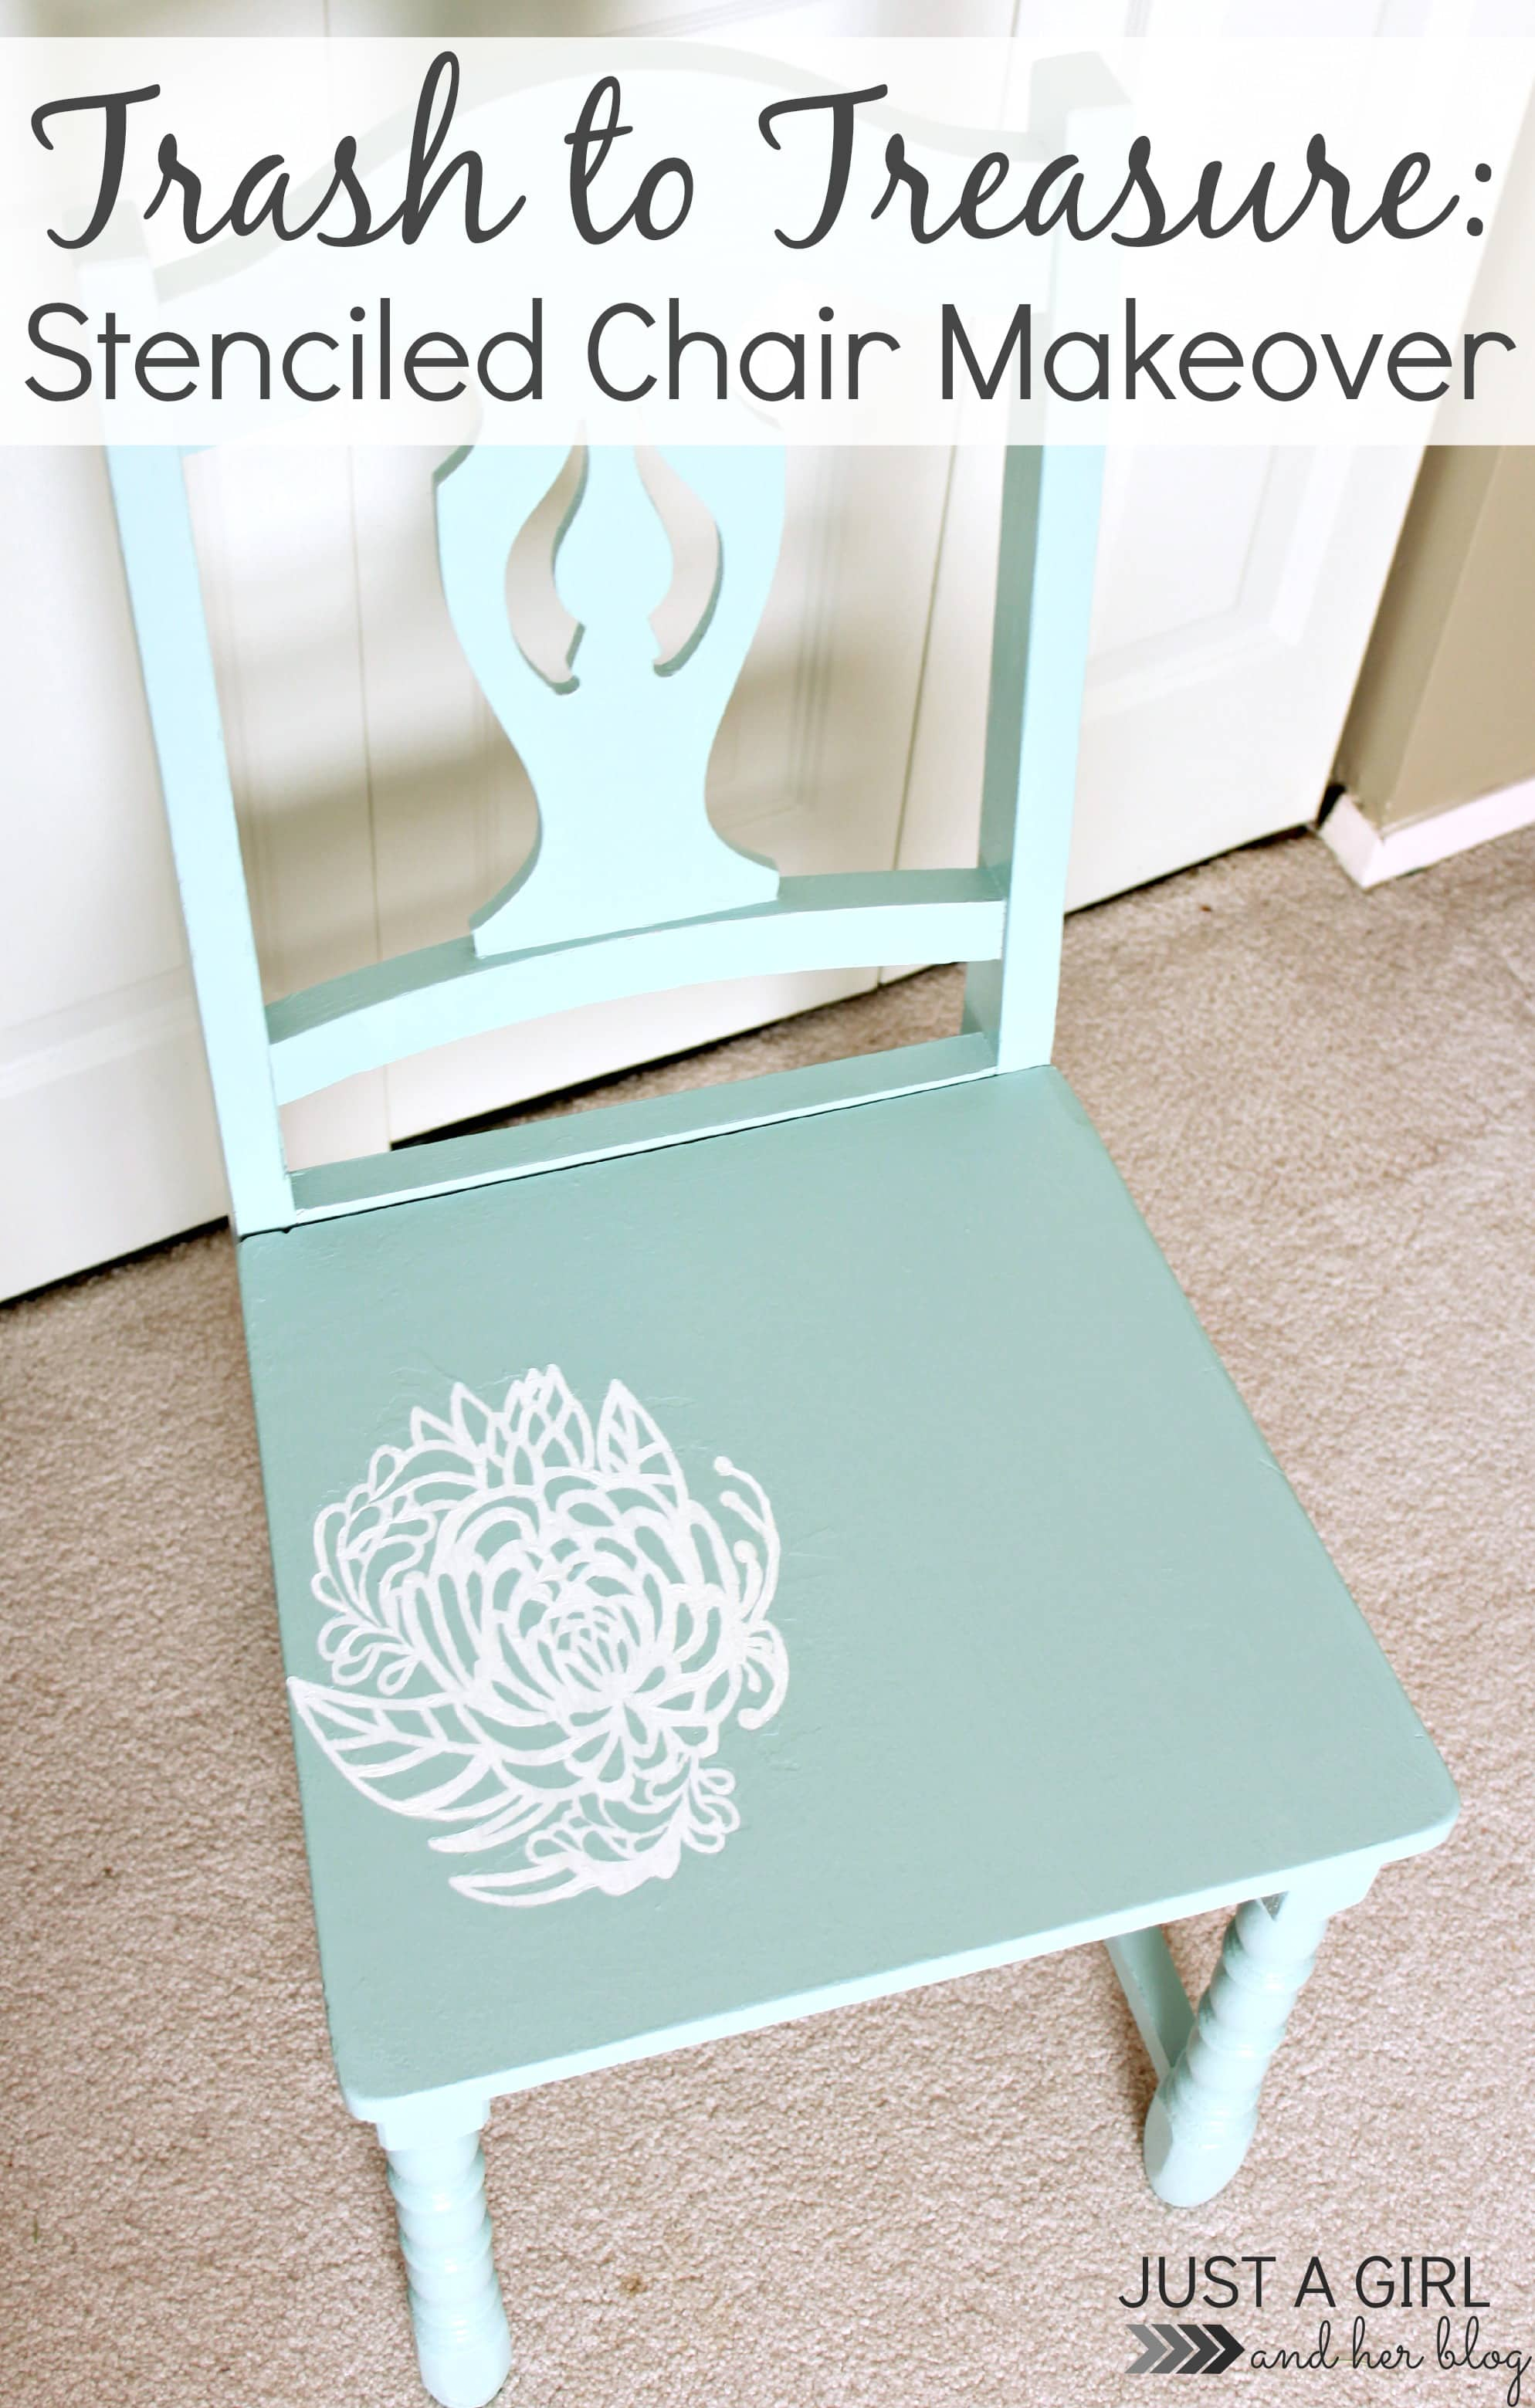 trash to treasure stenciled chair makeover